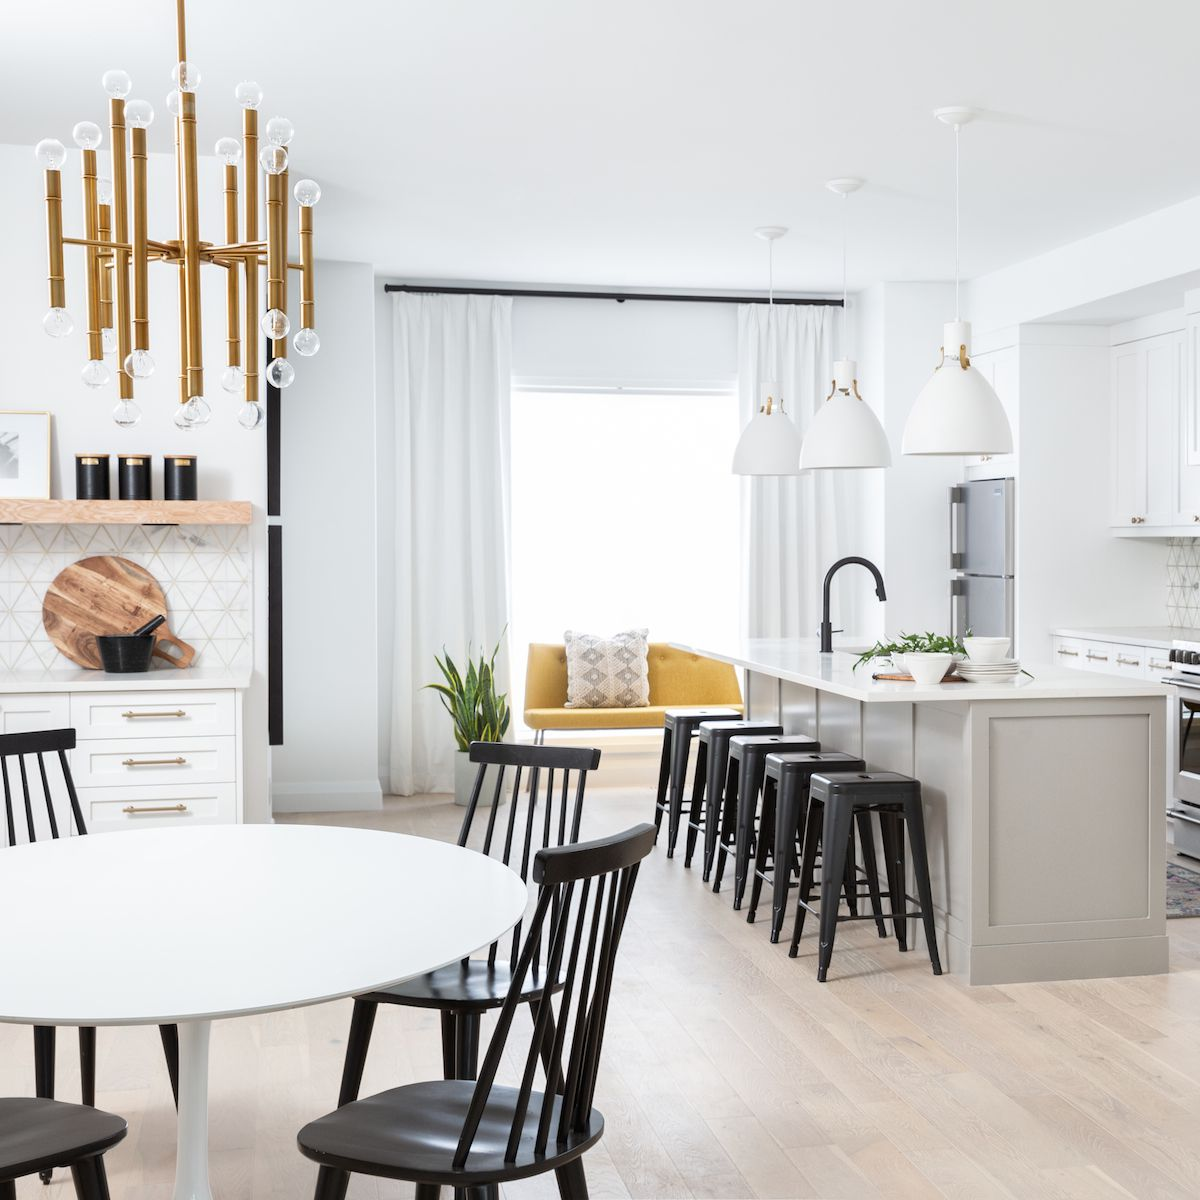 An open-concept kitchen with color-coordinated dining room chairs and bar stools